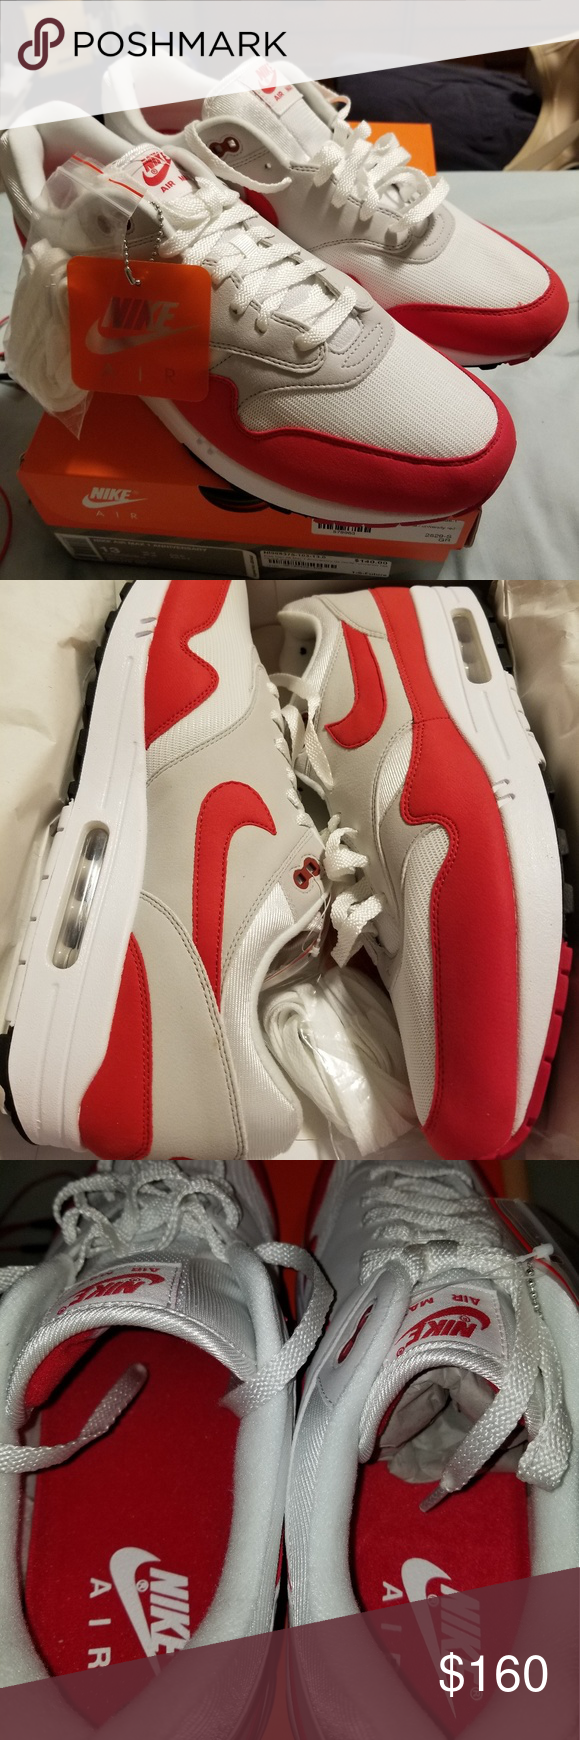 new concept f83fc 9ca96 Air Max 1 Anniversary Selling a pair of Air Max 1 s in the grey red white  color way. Size 13. Brand new. Hit me up if your interested or have any  questions.